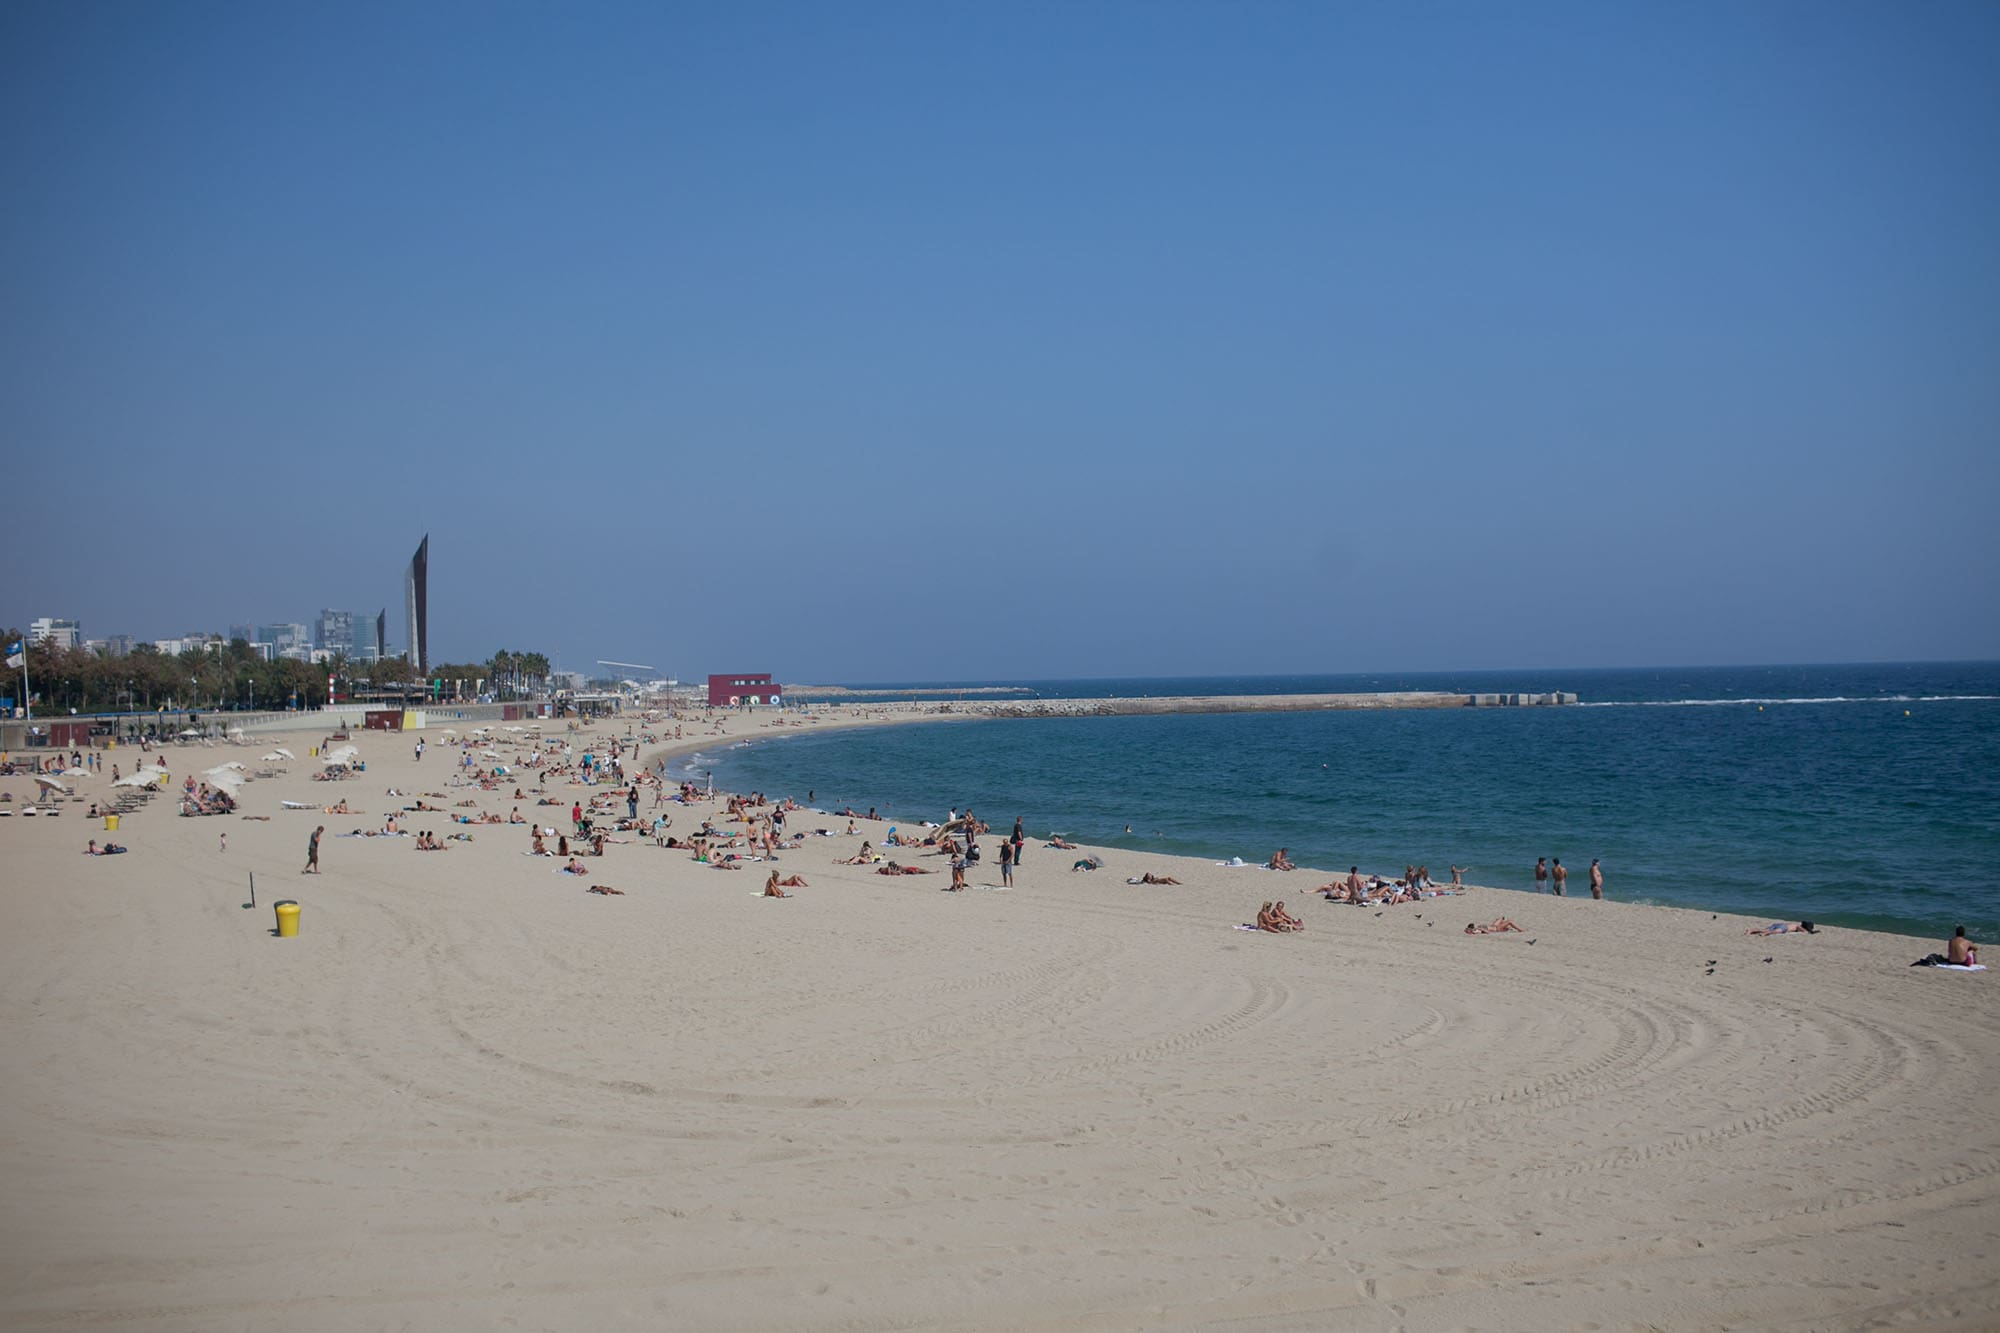 Beach in Barcelona, Spain